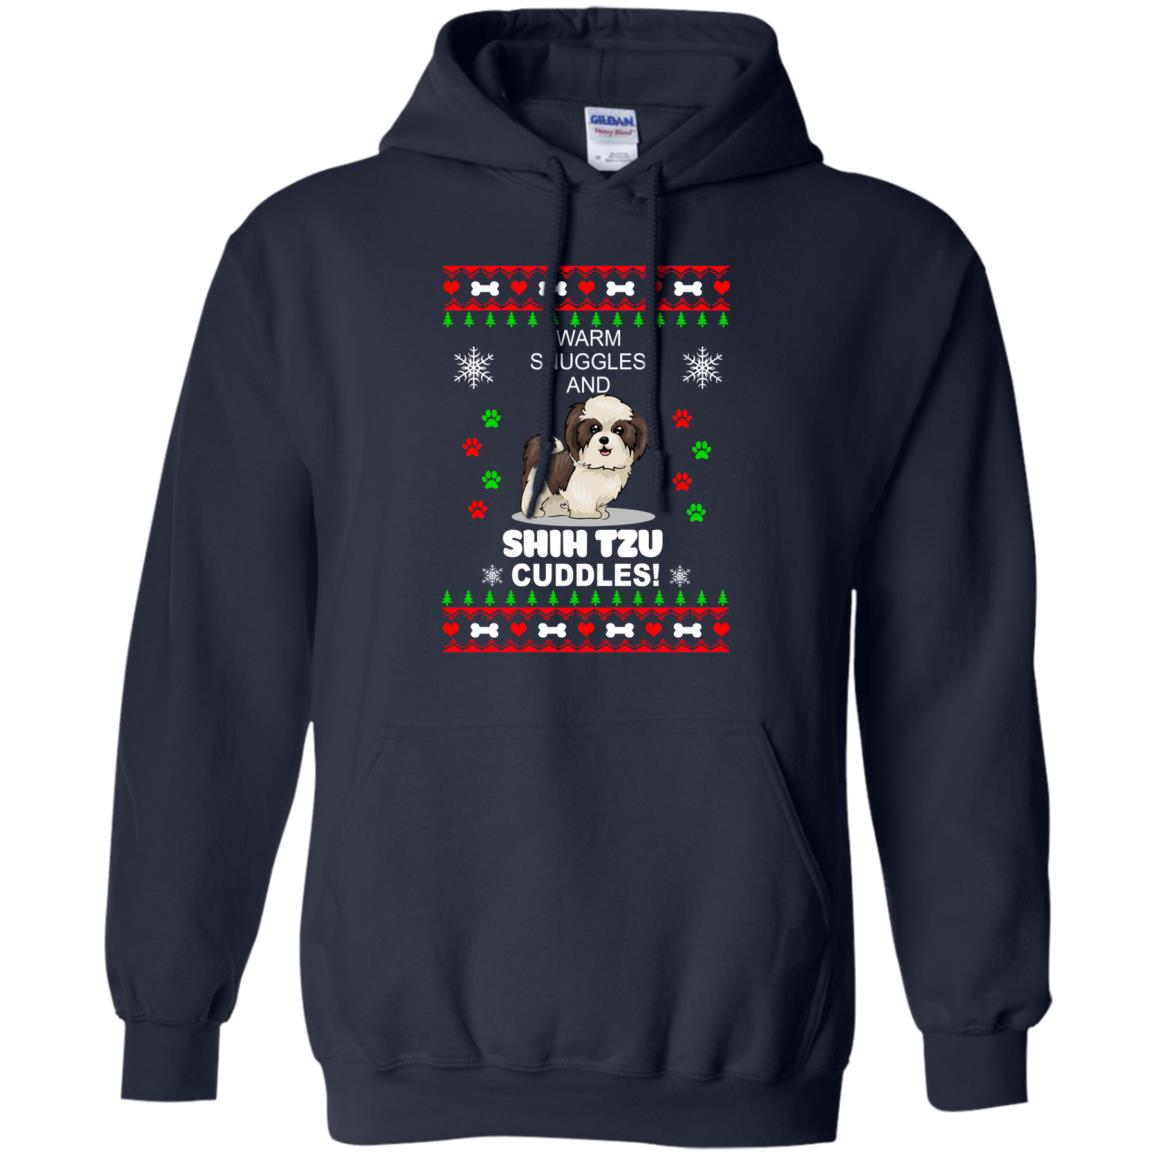 Warm snuggles and ShihTzu cuddles Christmas Sweater, Shirt - image 3985